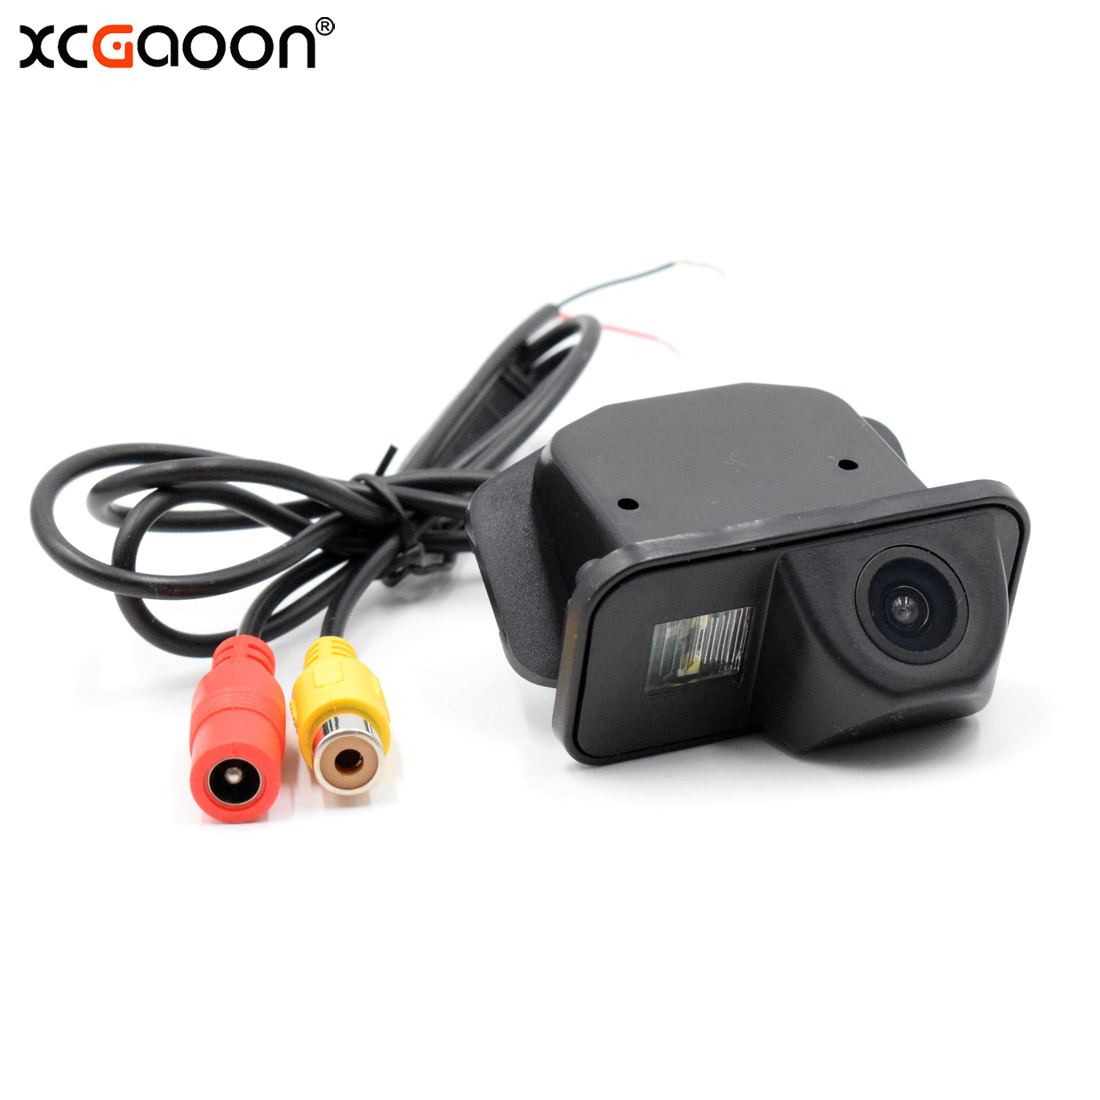 XCGaoon CCD Night Vision Waterproof Special Car Rear View Camera For <font><b>Toyota</b></font> Corolla Auris Avensis T25 <font><b>T27</b></font> Vehicle Reverse Camera image